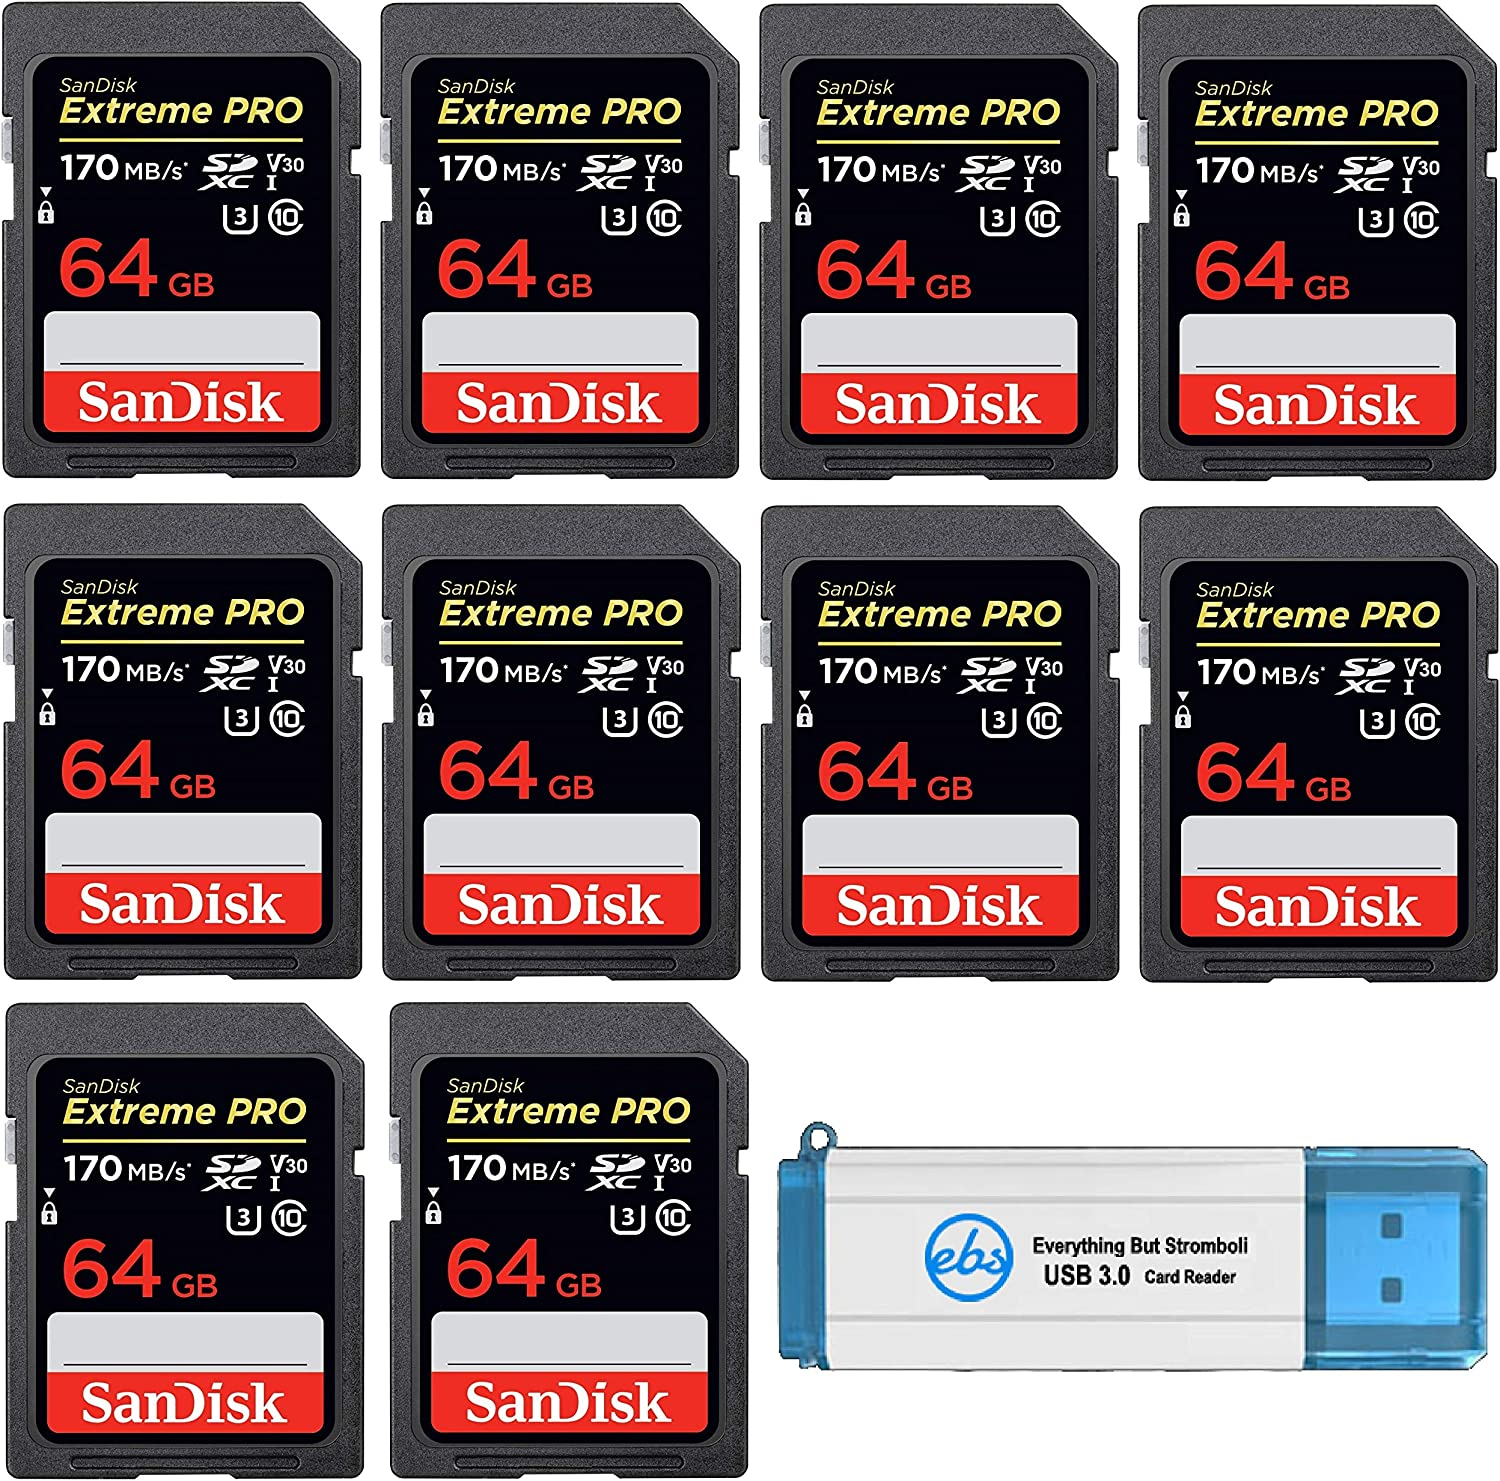 10 Pack 1 4K V30 UHS-I Speed Class 10 Everything But Stromboli 3.0 SD//TF Card Reader Bundle with SDSDXXY-064G-GN4IN SanDisk 64GB SDXC Extreme Pro Memory Card